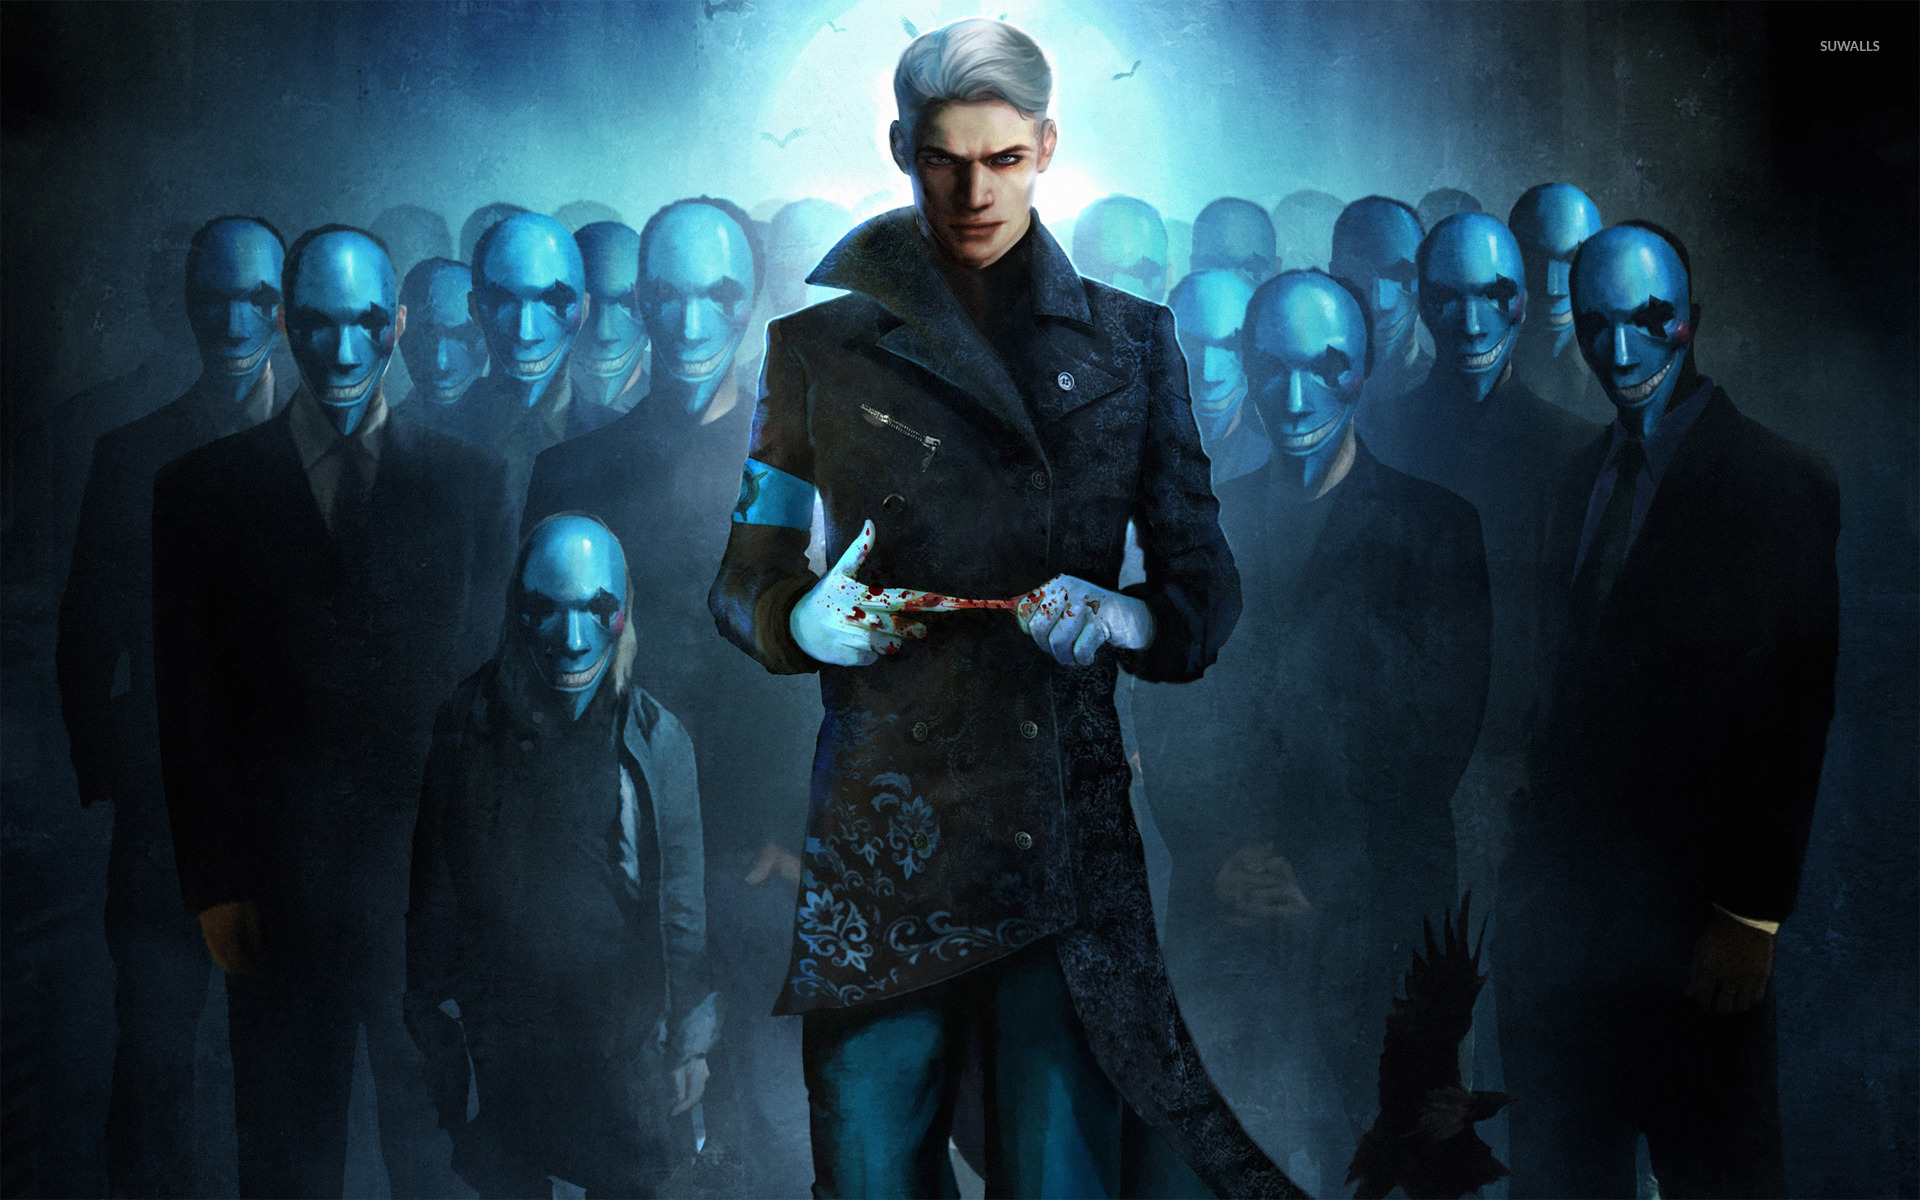 Vergil Devil May Cry 5 Wallpaper Game Wallpapers 18333